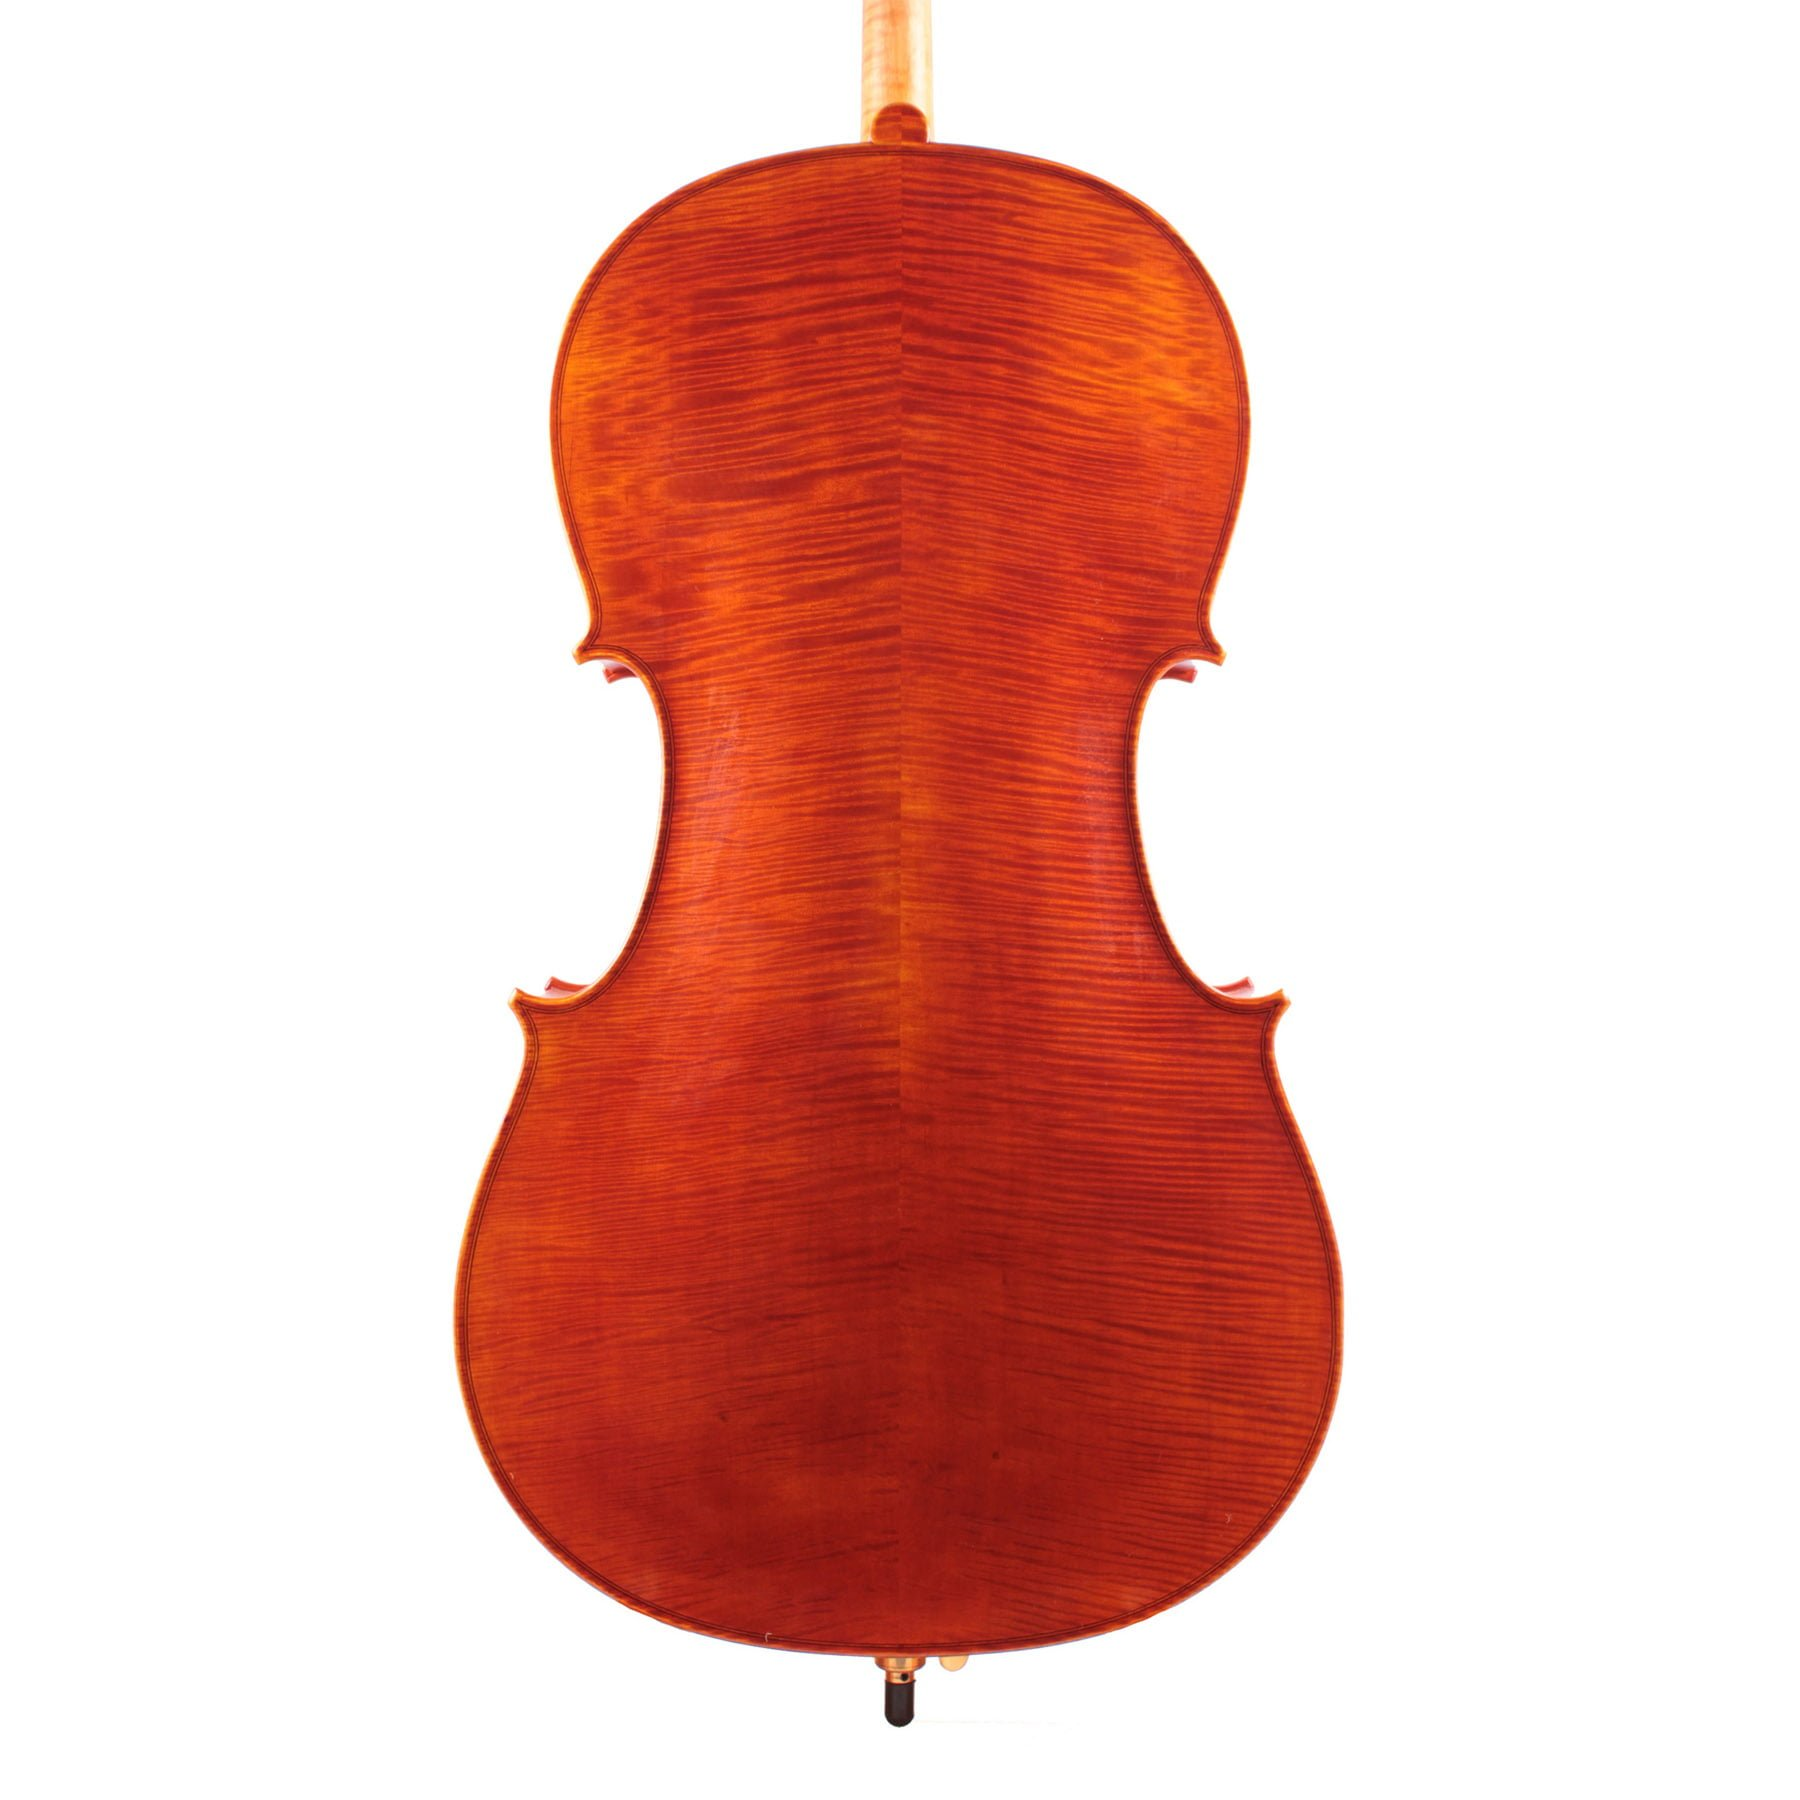 Jay Haide Superior Cello back view